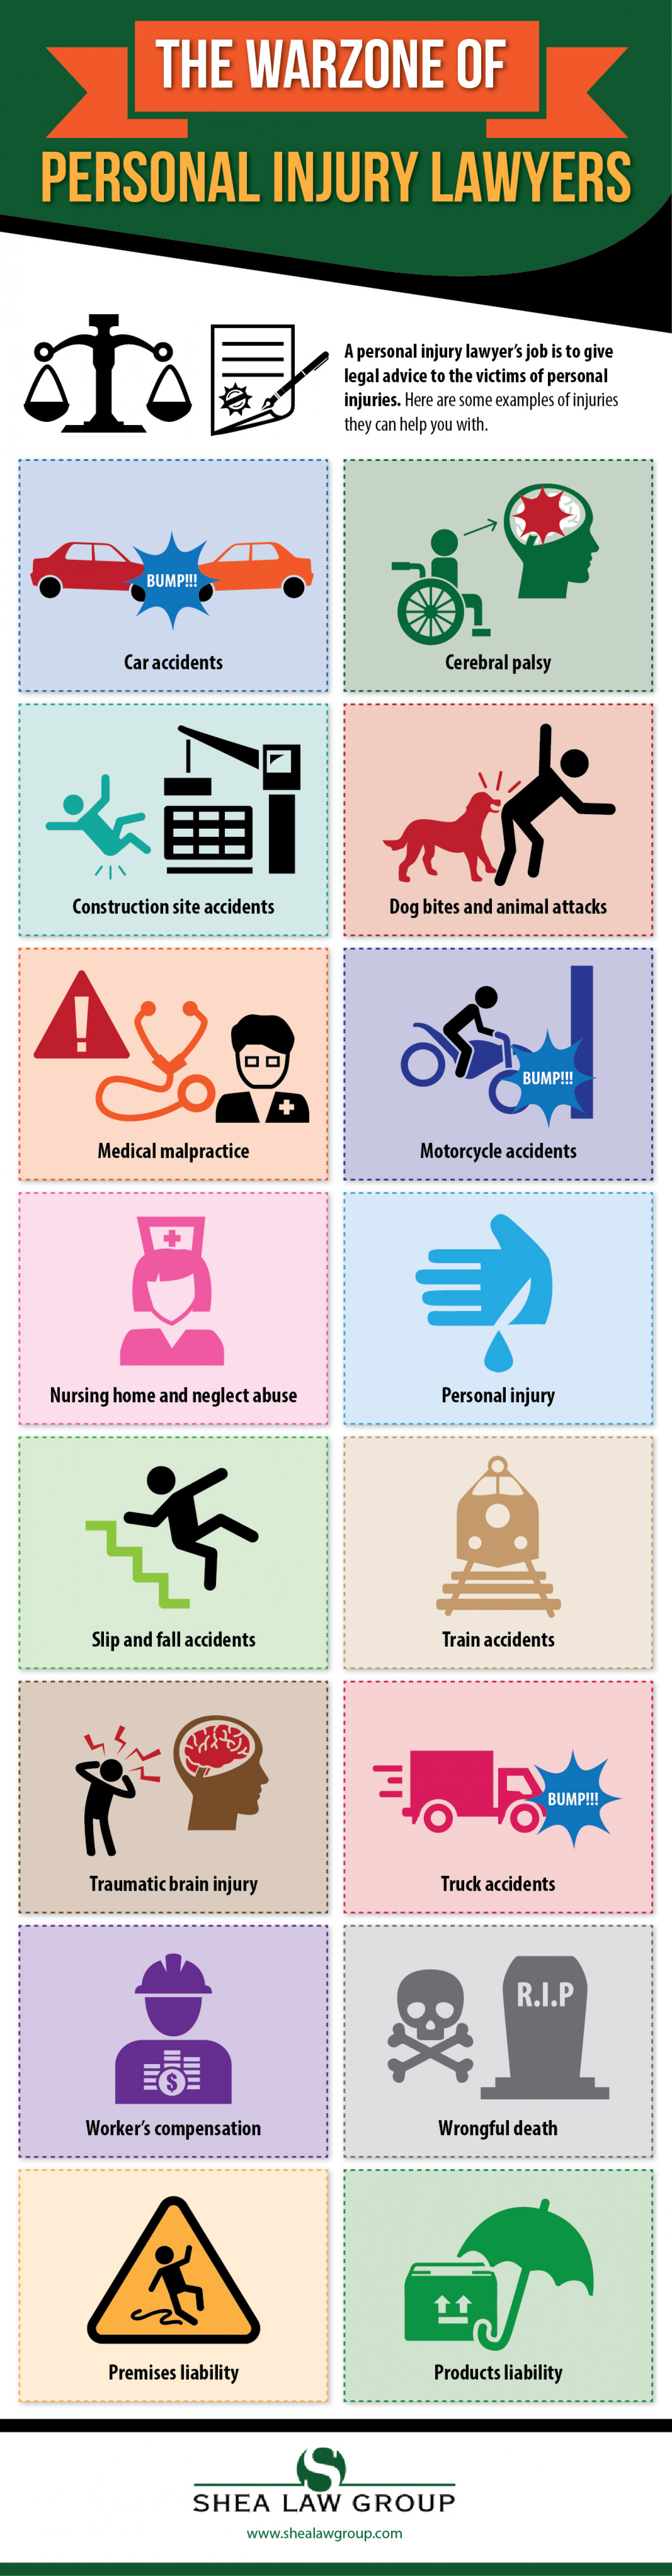 The Warzone Of Personal Injury Lawyers Infographic